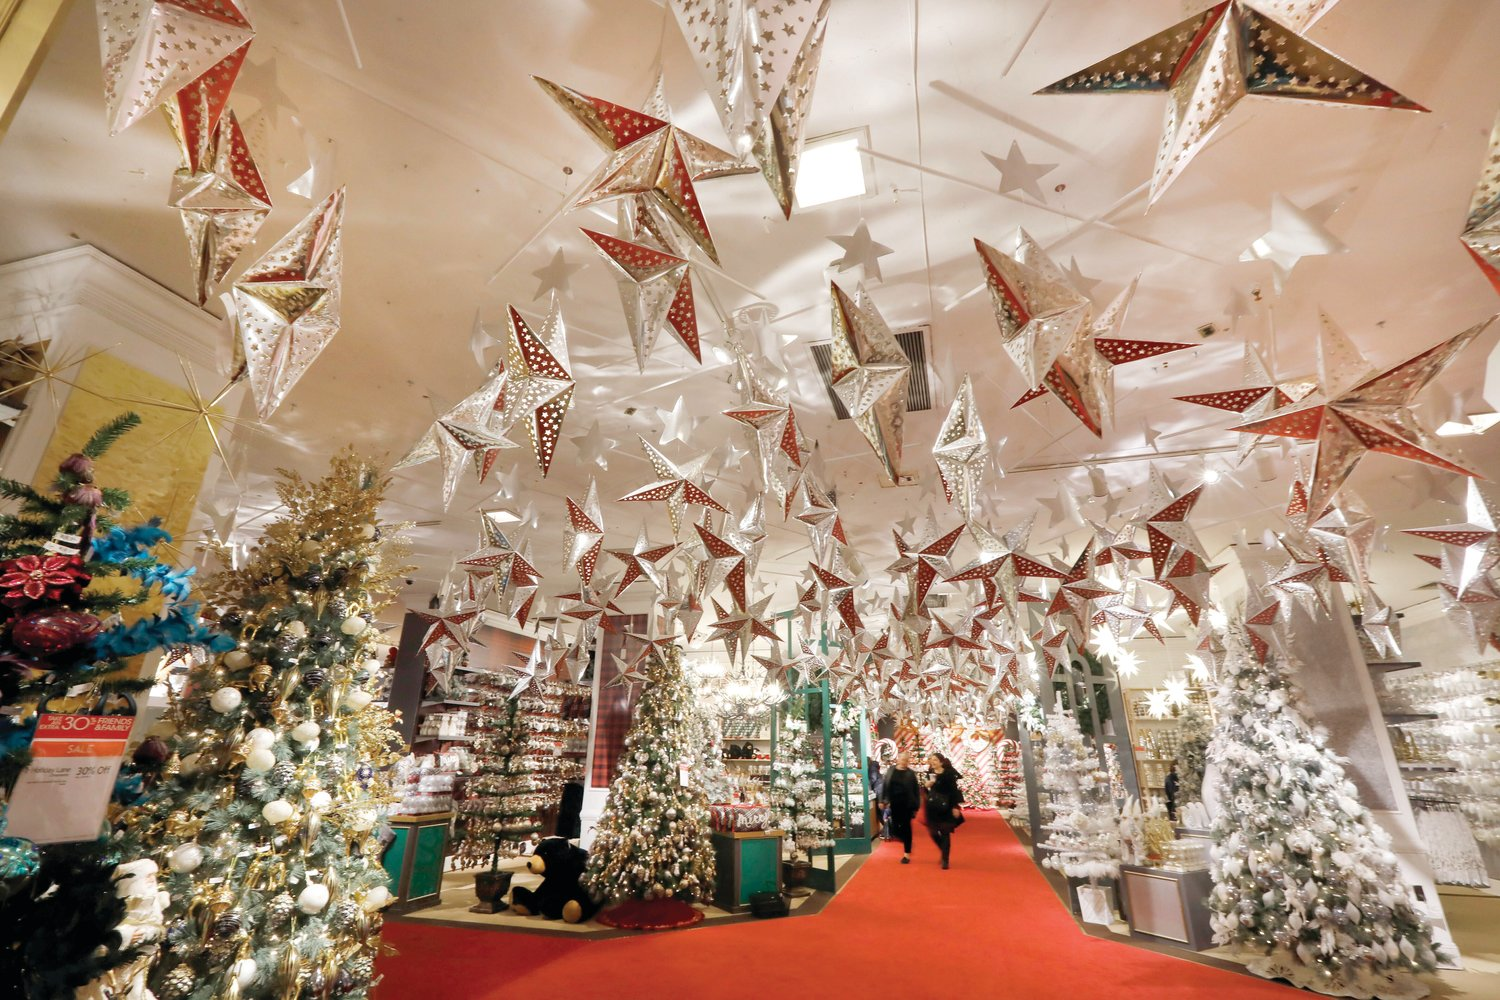 In this Nov. 5, 2019 file photo, shoppers browse the Holiday Lane section at the Macy's flagship store in New York. Experts predict another busy holiday shopping season.